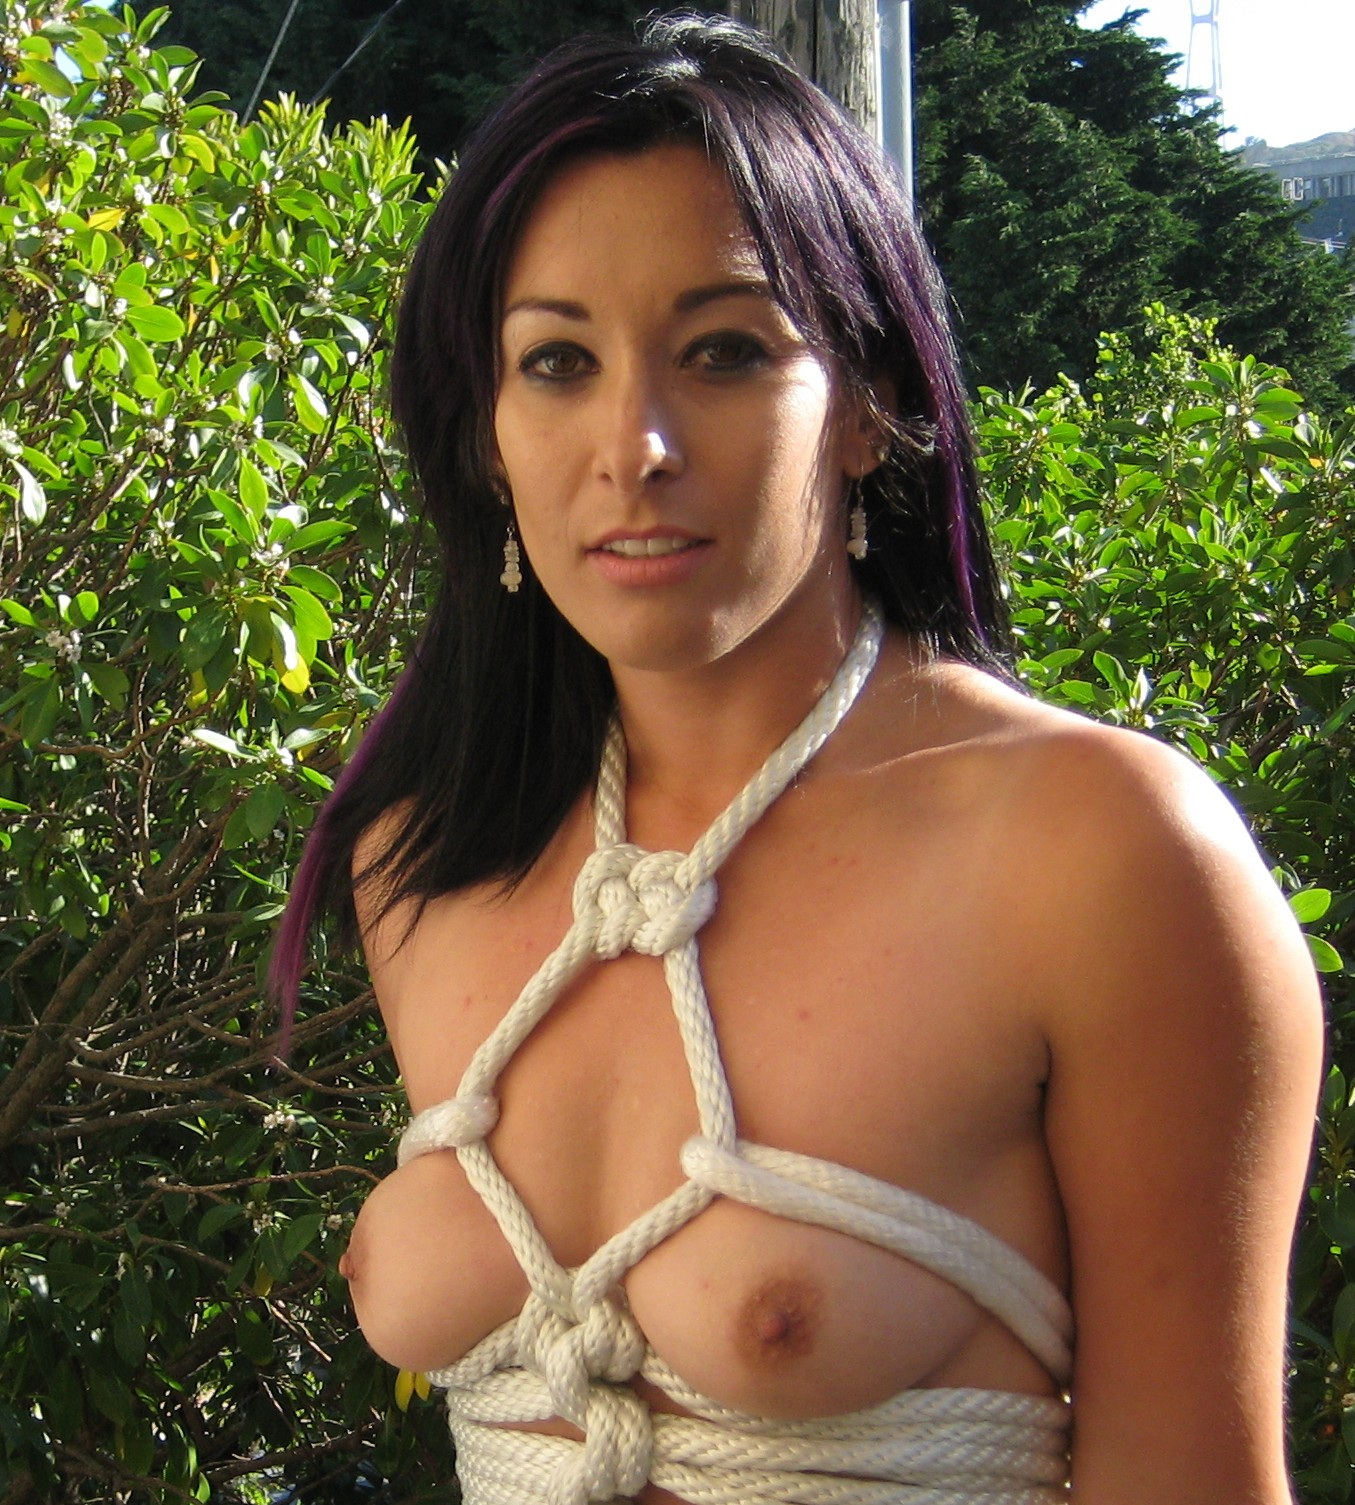 Sexy, sexy! Breast rope bondage she